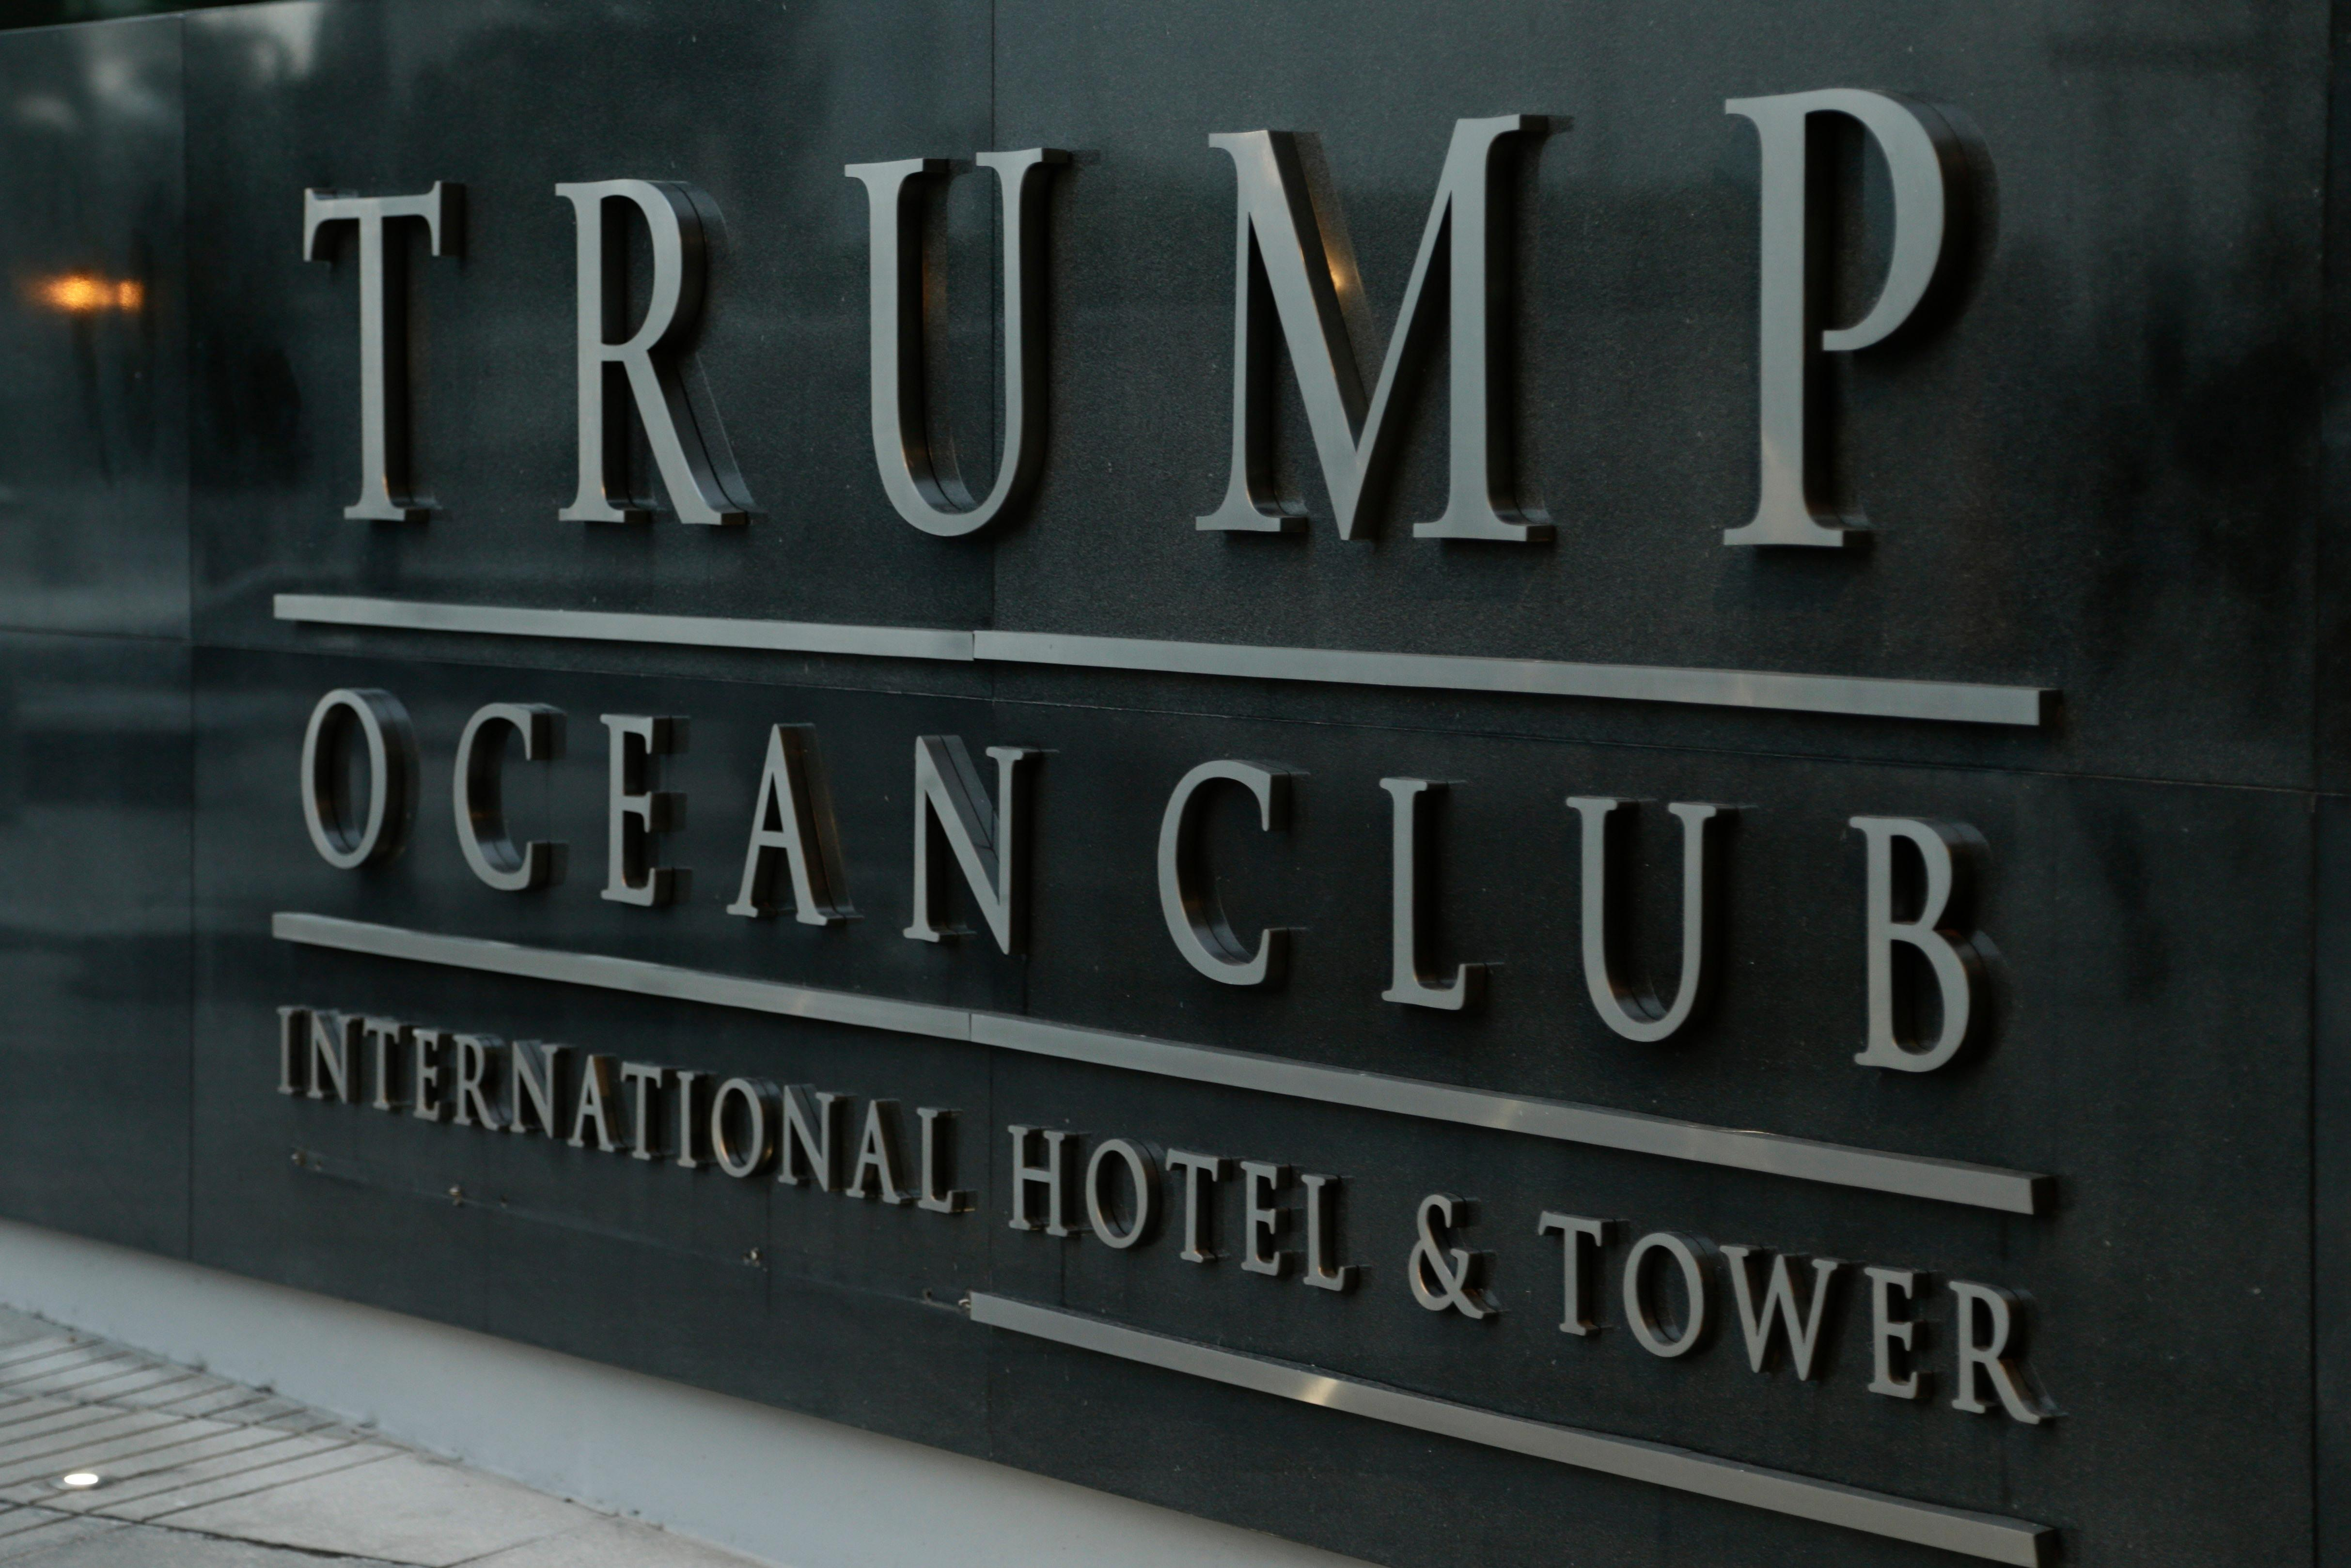 A marquee of the main entrance to the Trump Ocean Club International Hotel and Tower is seen in Panama City, Friday, Feb. 23, 2018. One of President Donald Trump's family businesses is battling an effort to physically evict its team of executives from a luxury hotel in Panama where they manage operations, and police have been called to keep the peace, The Associated Press has learned. Witnesses told the AP they saw Trump's executives carrying files to a room for shredding. (AP Photo/Arnulfo Franco)